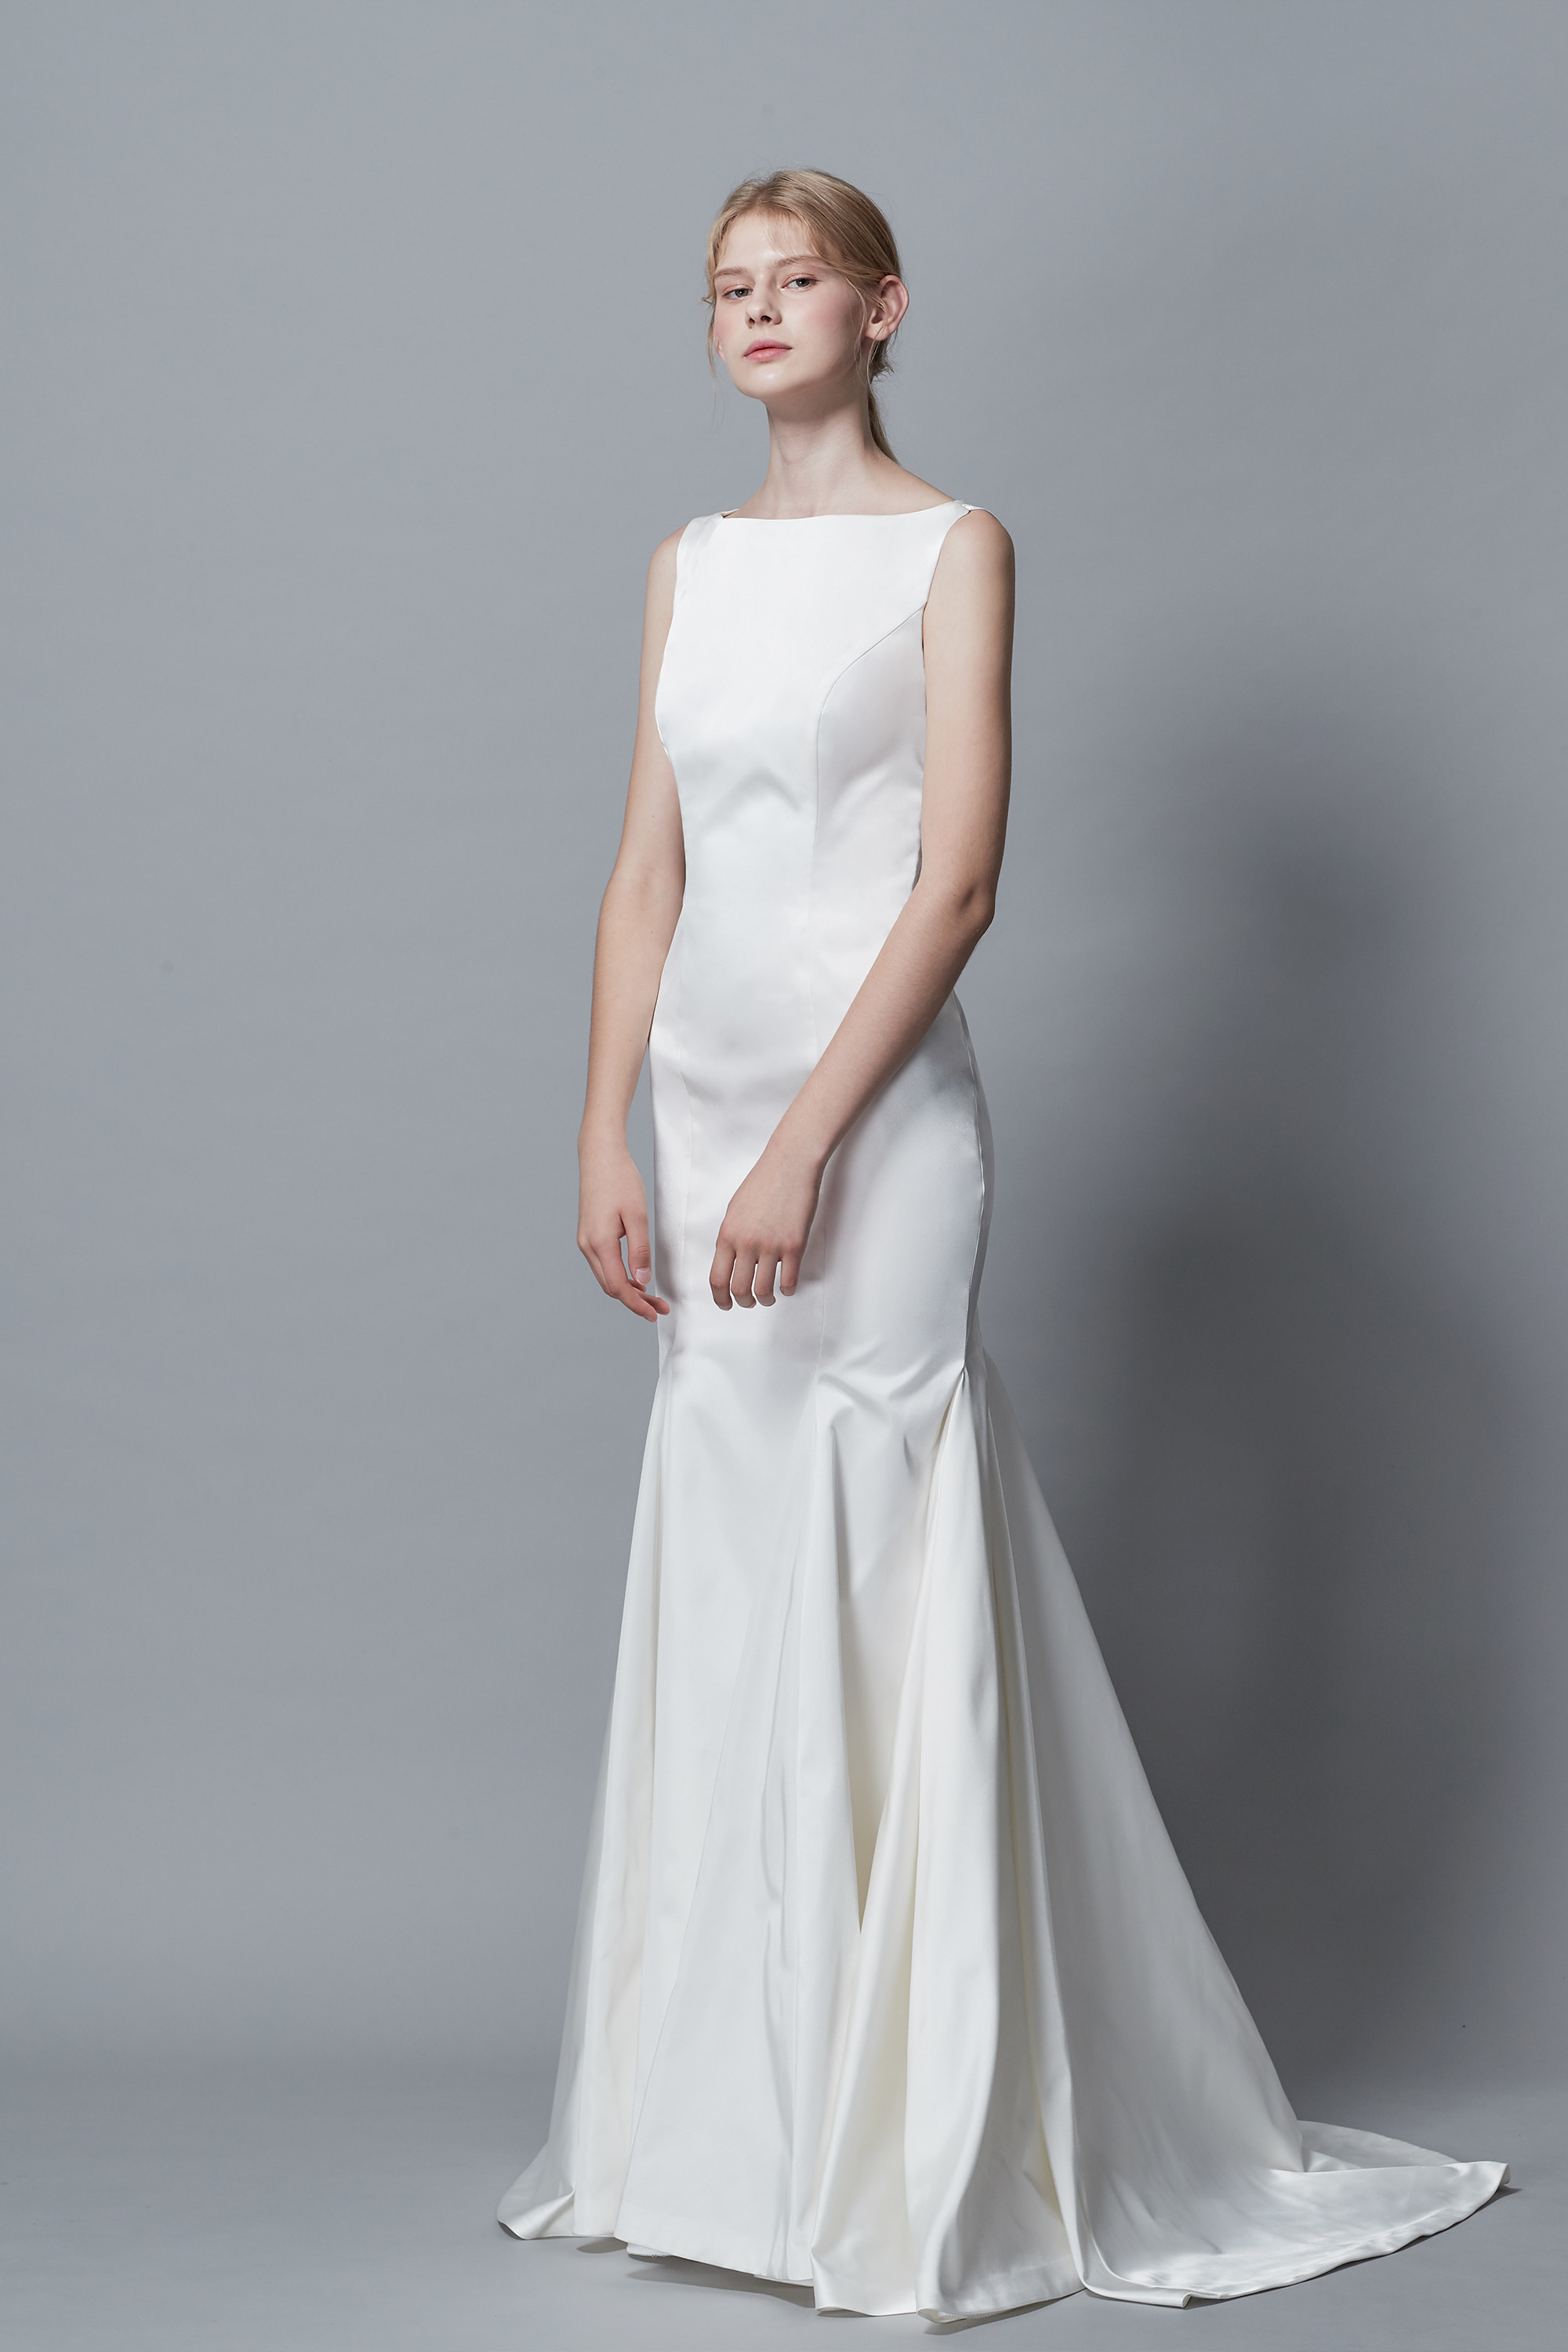 Ciel Blanc, CL BRIDAL, MERMAID WEDDIGN DRESS, TAFFETA, BOAT NECK